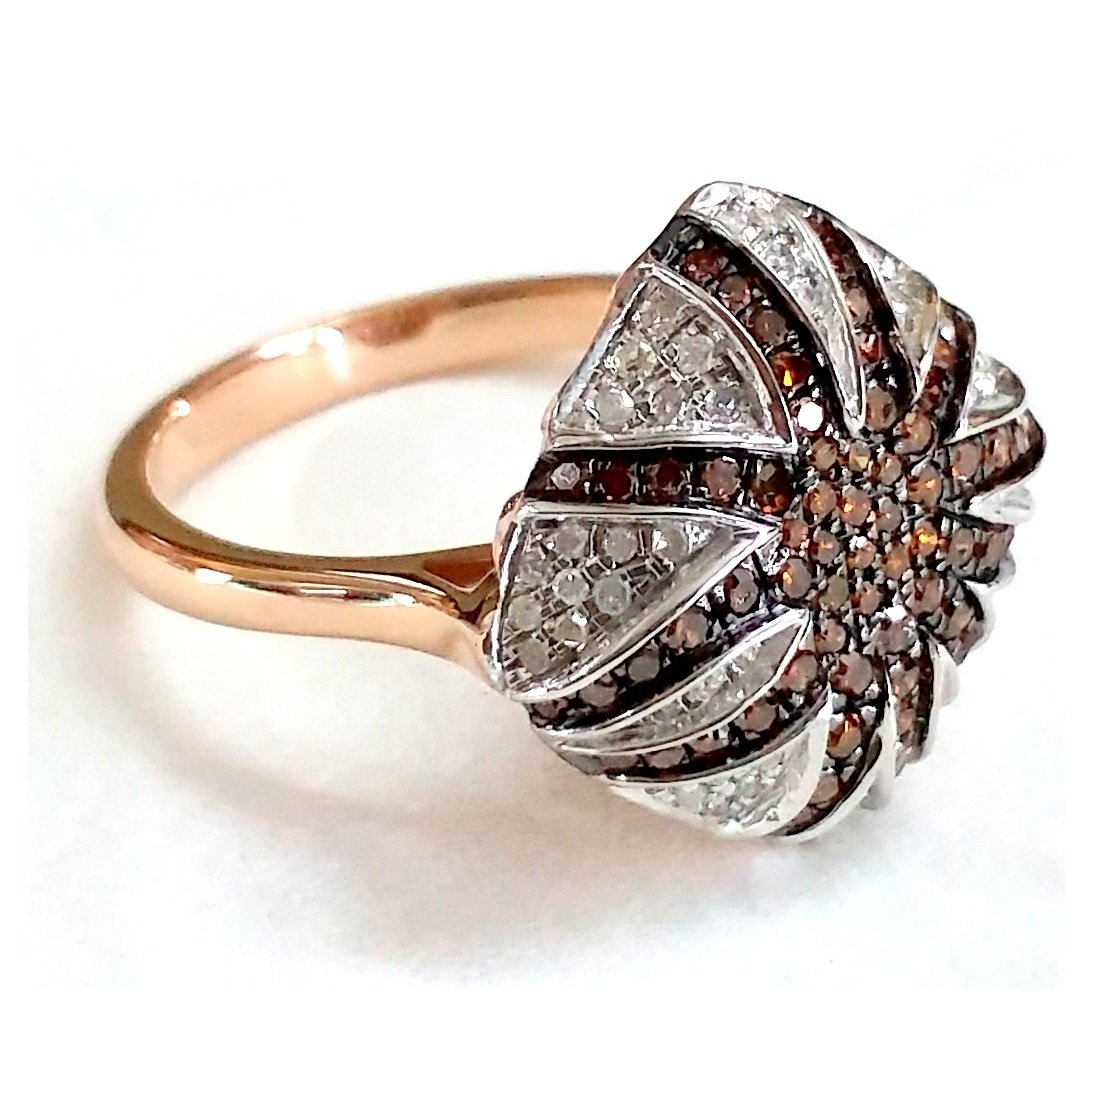 Goldenstar 0.57Ct Cognac /& White Diamond Ring 925 Sterling Silver Ring